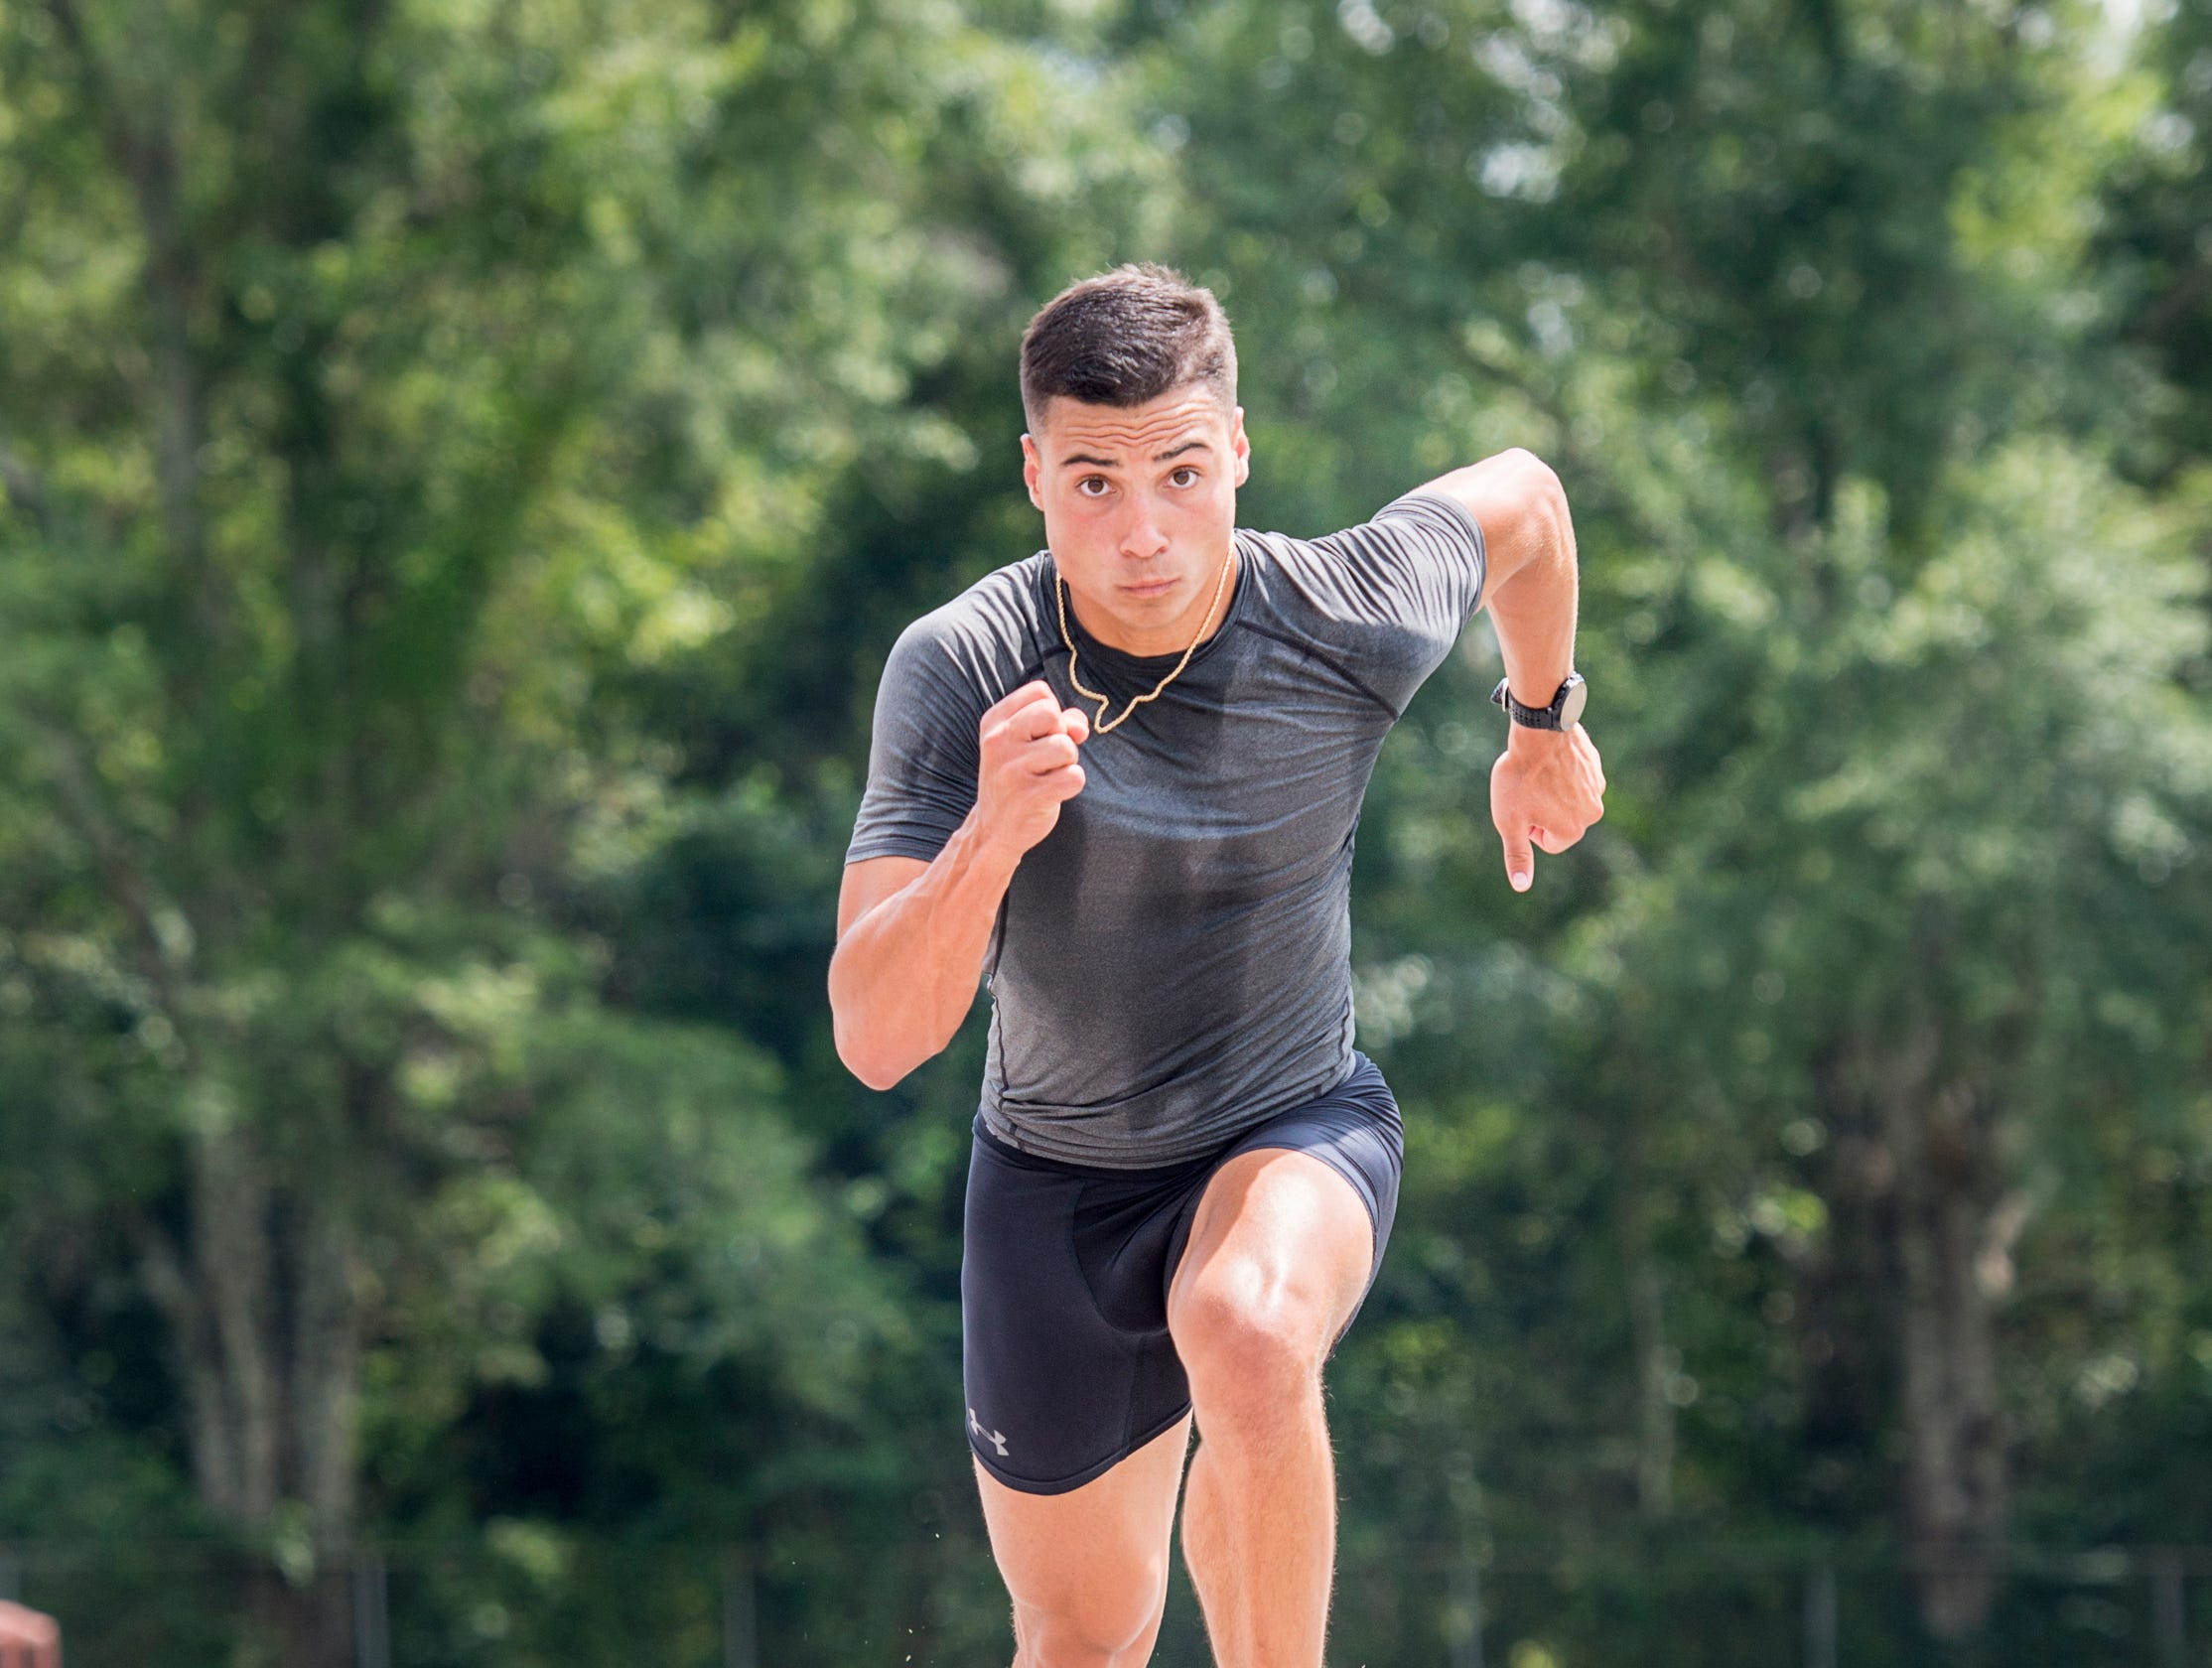 Decathlete Joseph Zayszly shows his running technique at Tate High School in Pensacola on Tuesday, July 24, 2018.